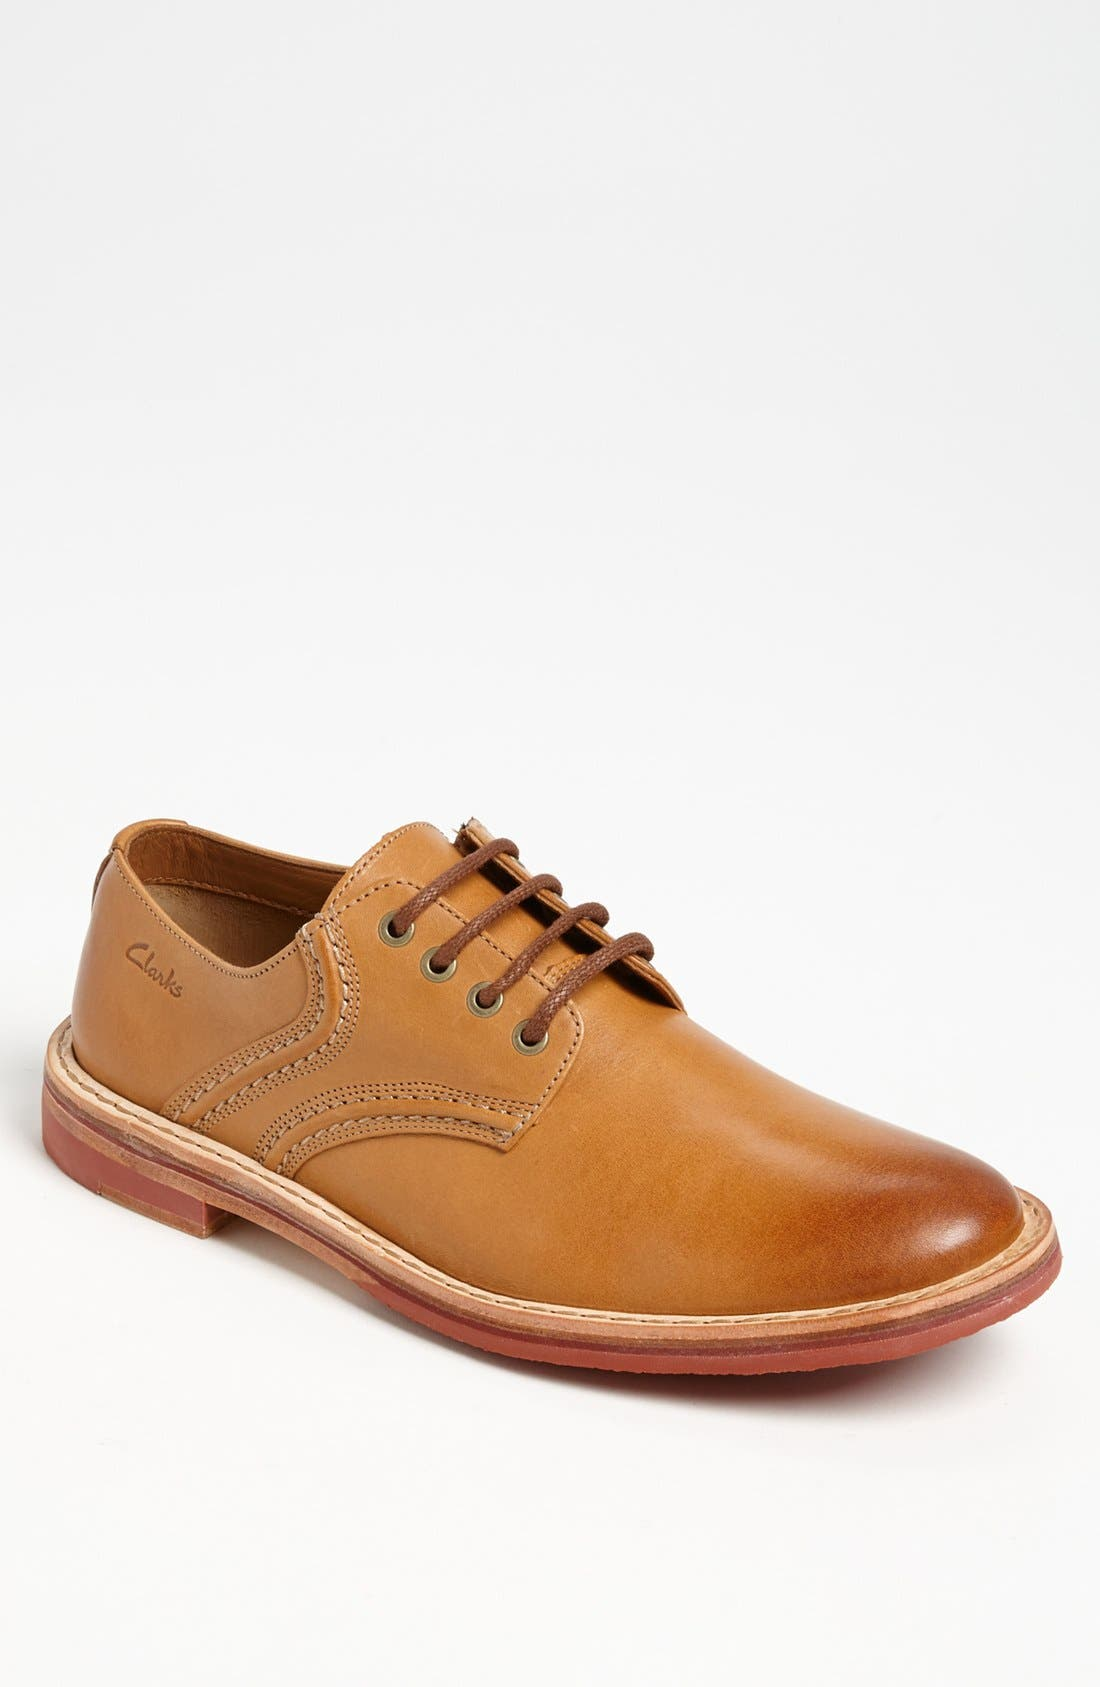 Alternate Image 1 Selected - Clarks® 'Duty Trek' Plain Toe Derby